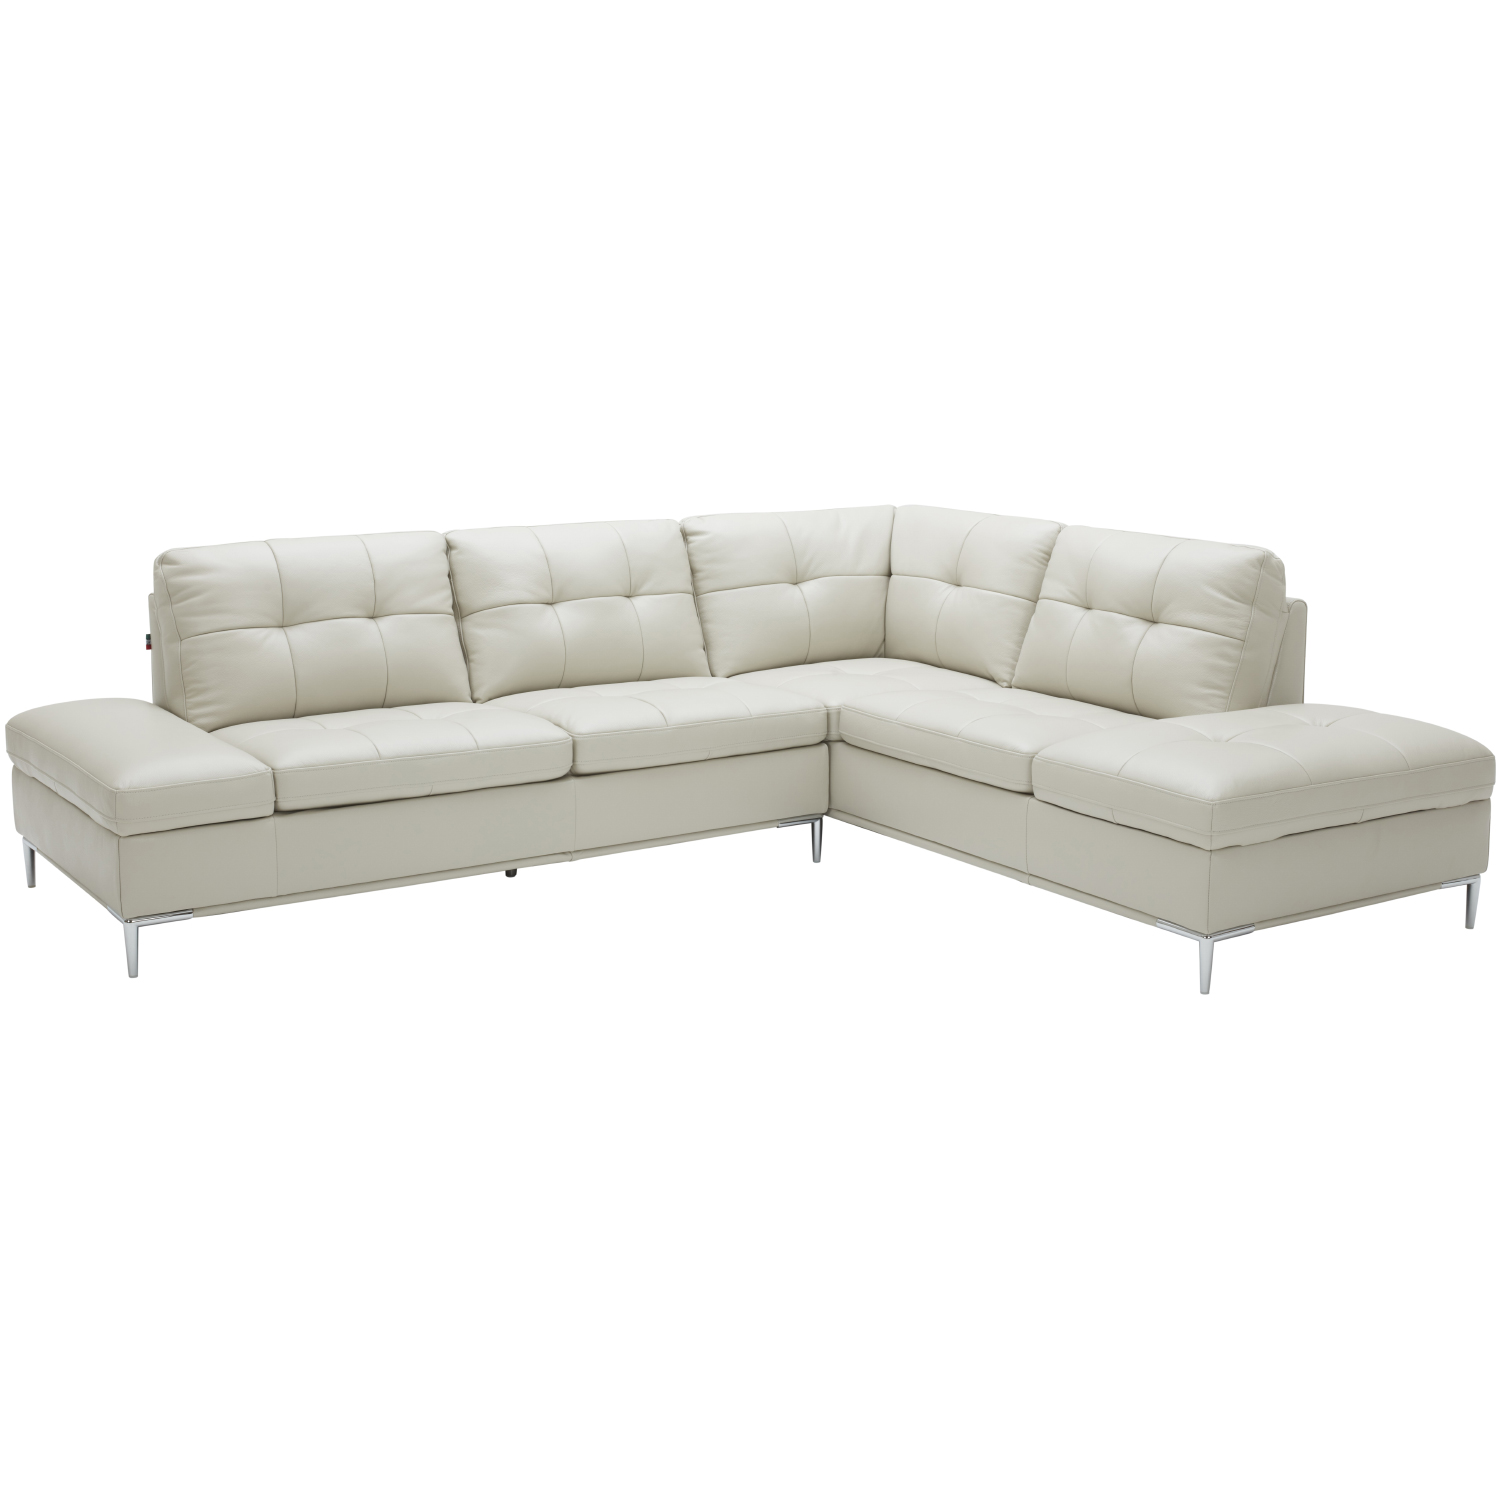 Terrific Leonardo Sectional Sofa W Right Hand Facing Chaise In Light Grey Leather By J And M Furniture Short Links Chair Design For Home Short Linksinfo